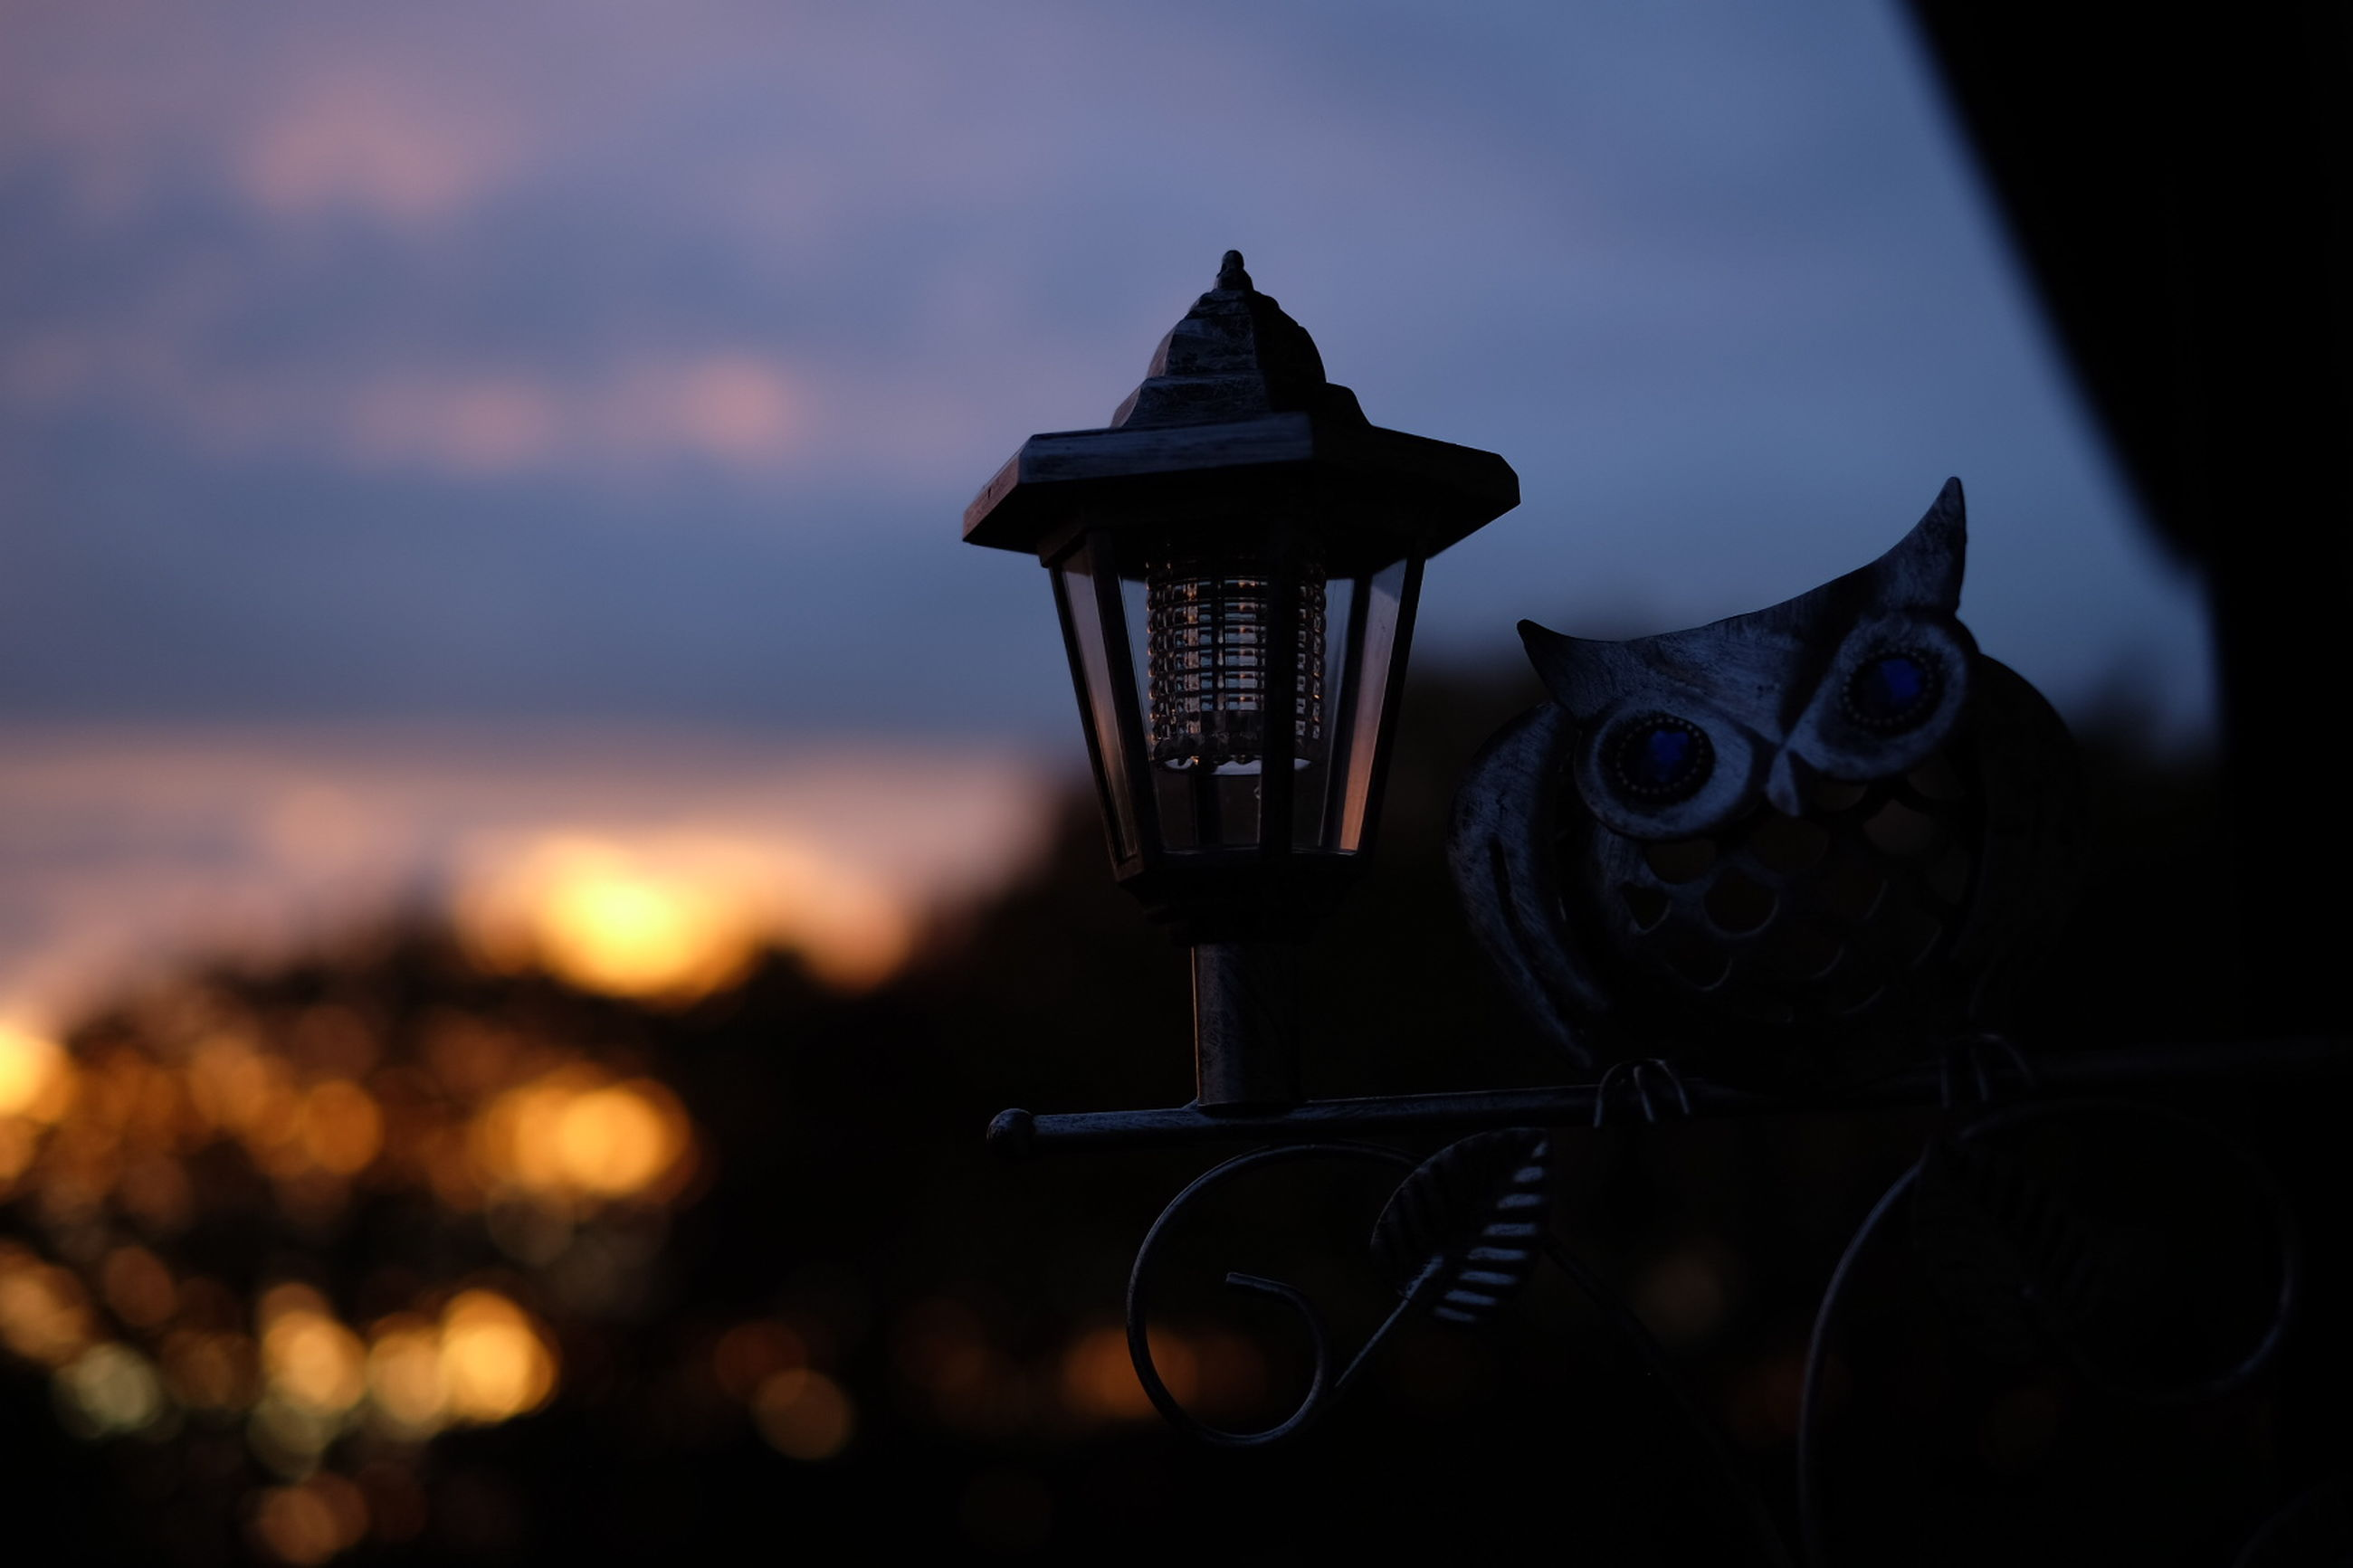 focus on foreground, illuminated, close-up, lighting equipment, selective focus, low angle view, sky, no people, metal, silhouette, night, dusk, lantern, sunset, outdoors, electricity, glowing, electric light, still life, street light